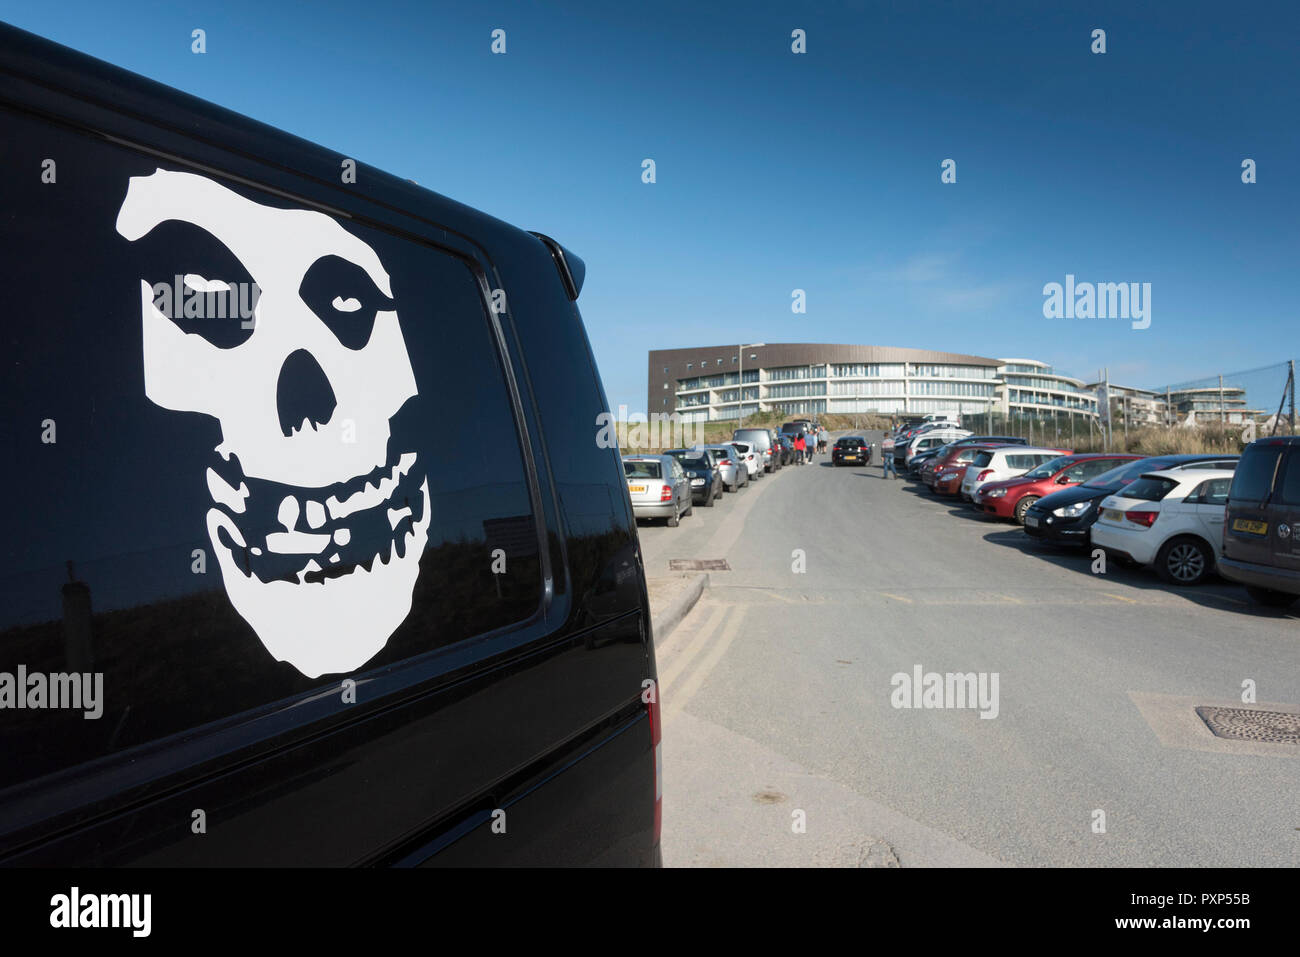 A white skull motif artwork on the side of a black van in the car park at Fistral in Newquay in Cornwall. - Stock Image